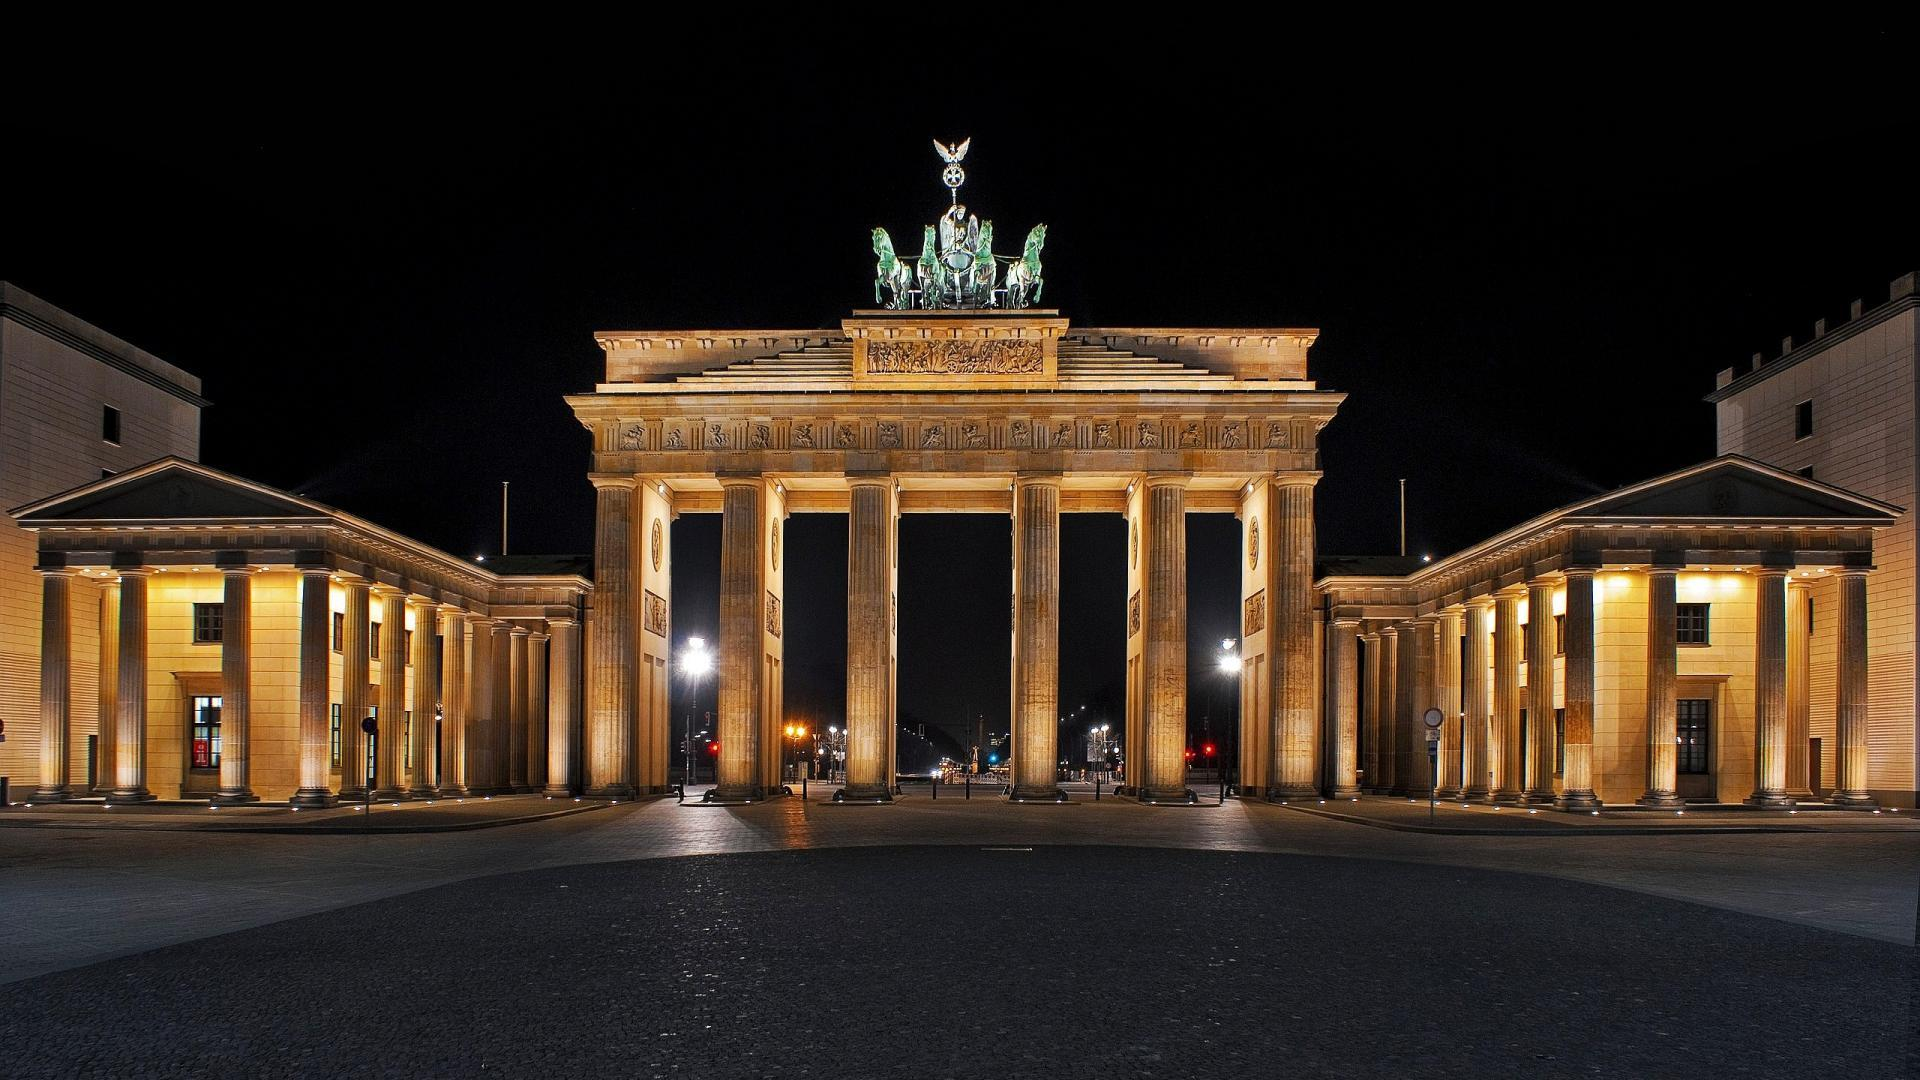 Brandenburg Gate Night View Photo – Travel HD Wallpapers